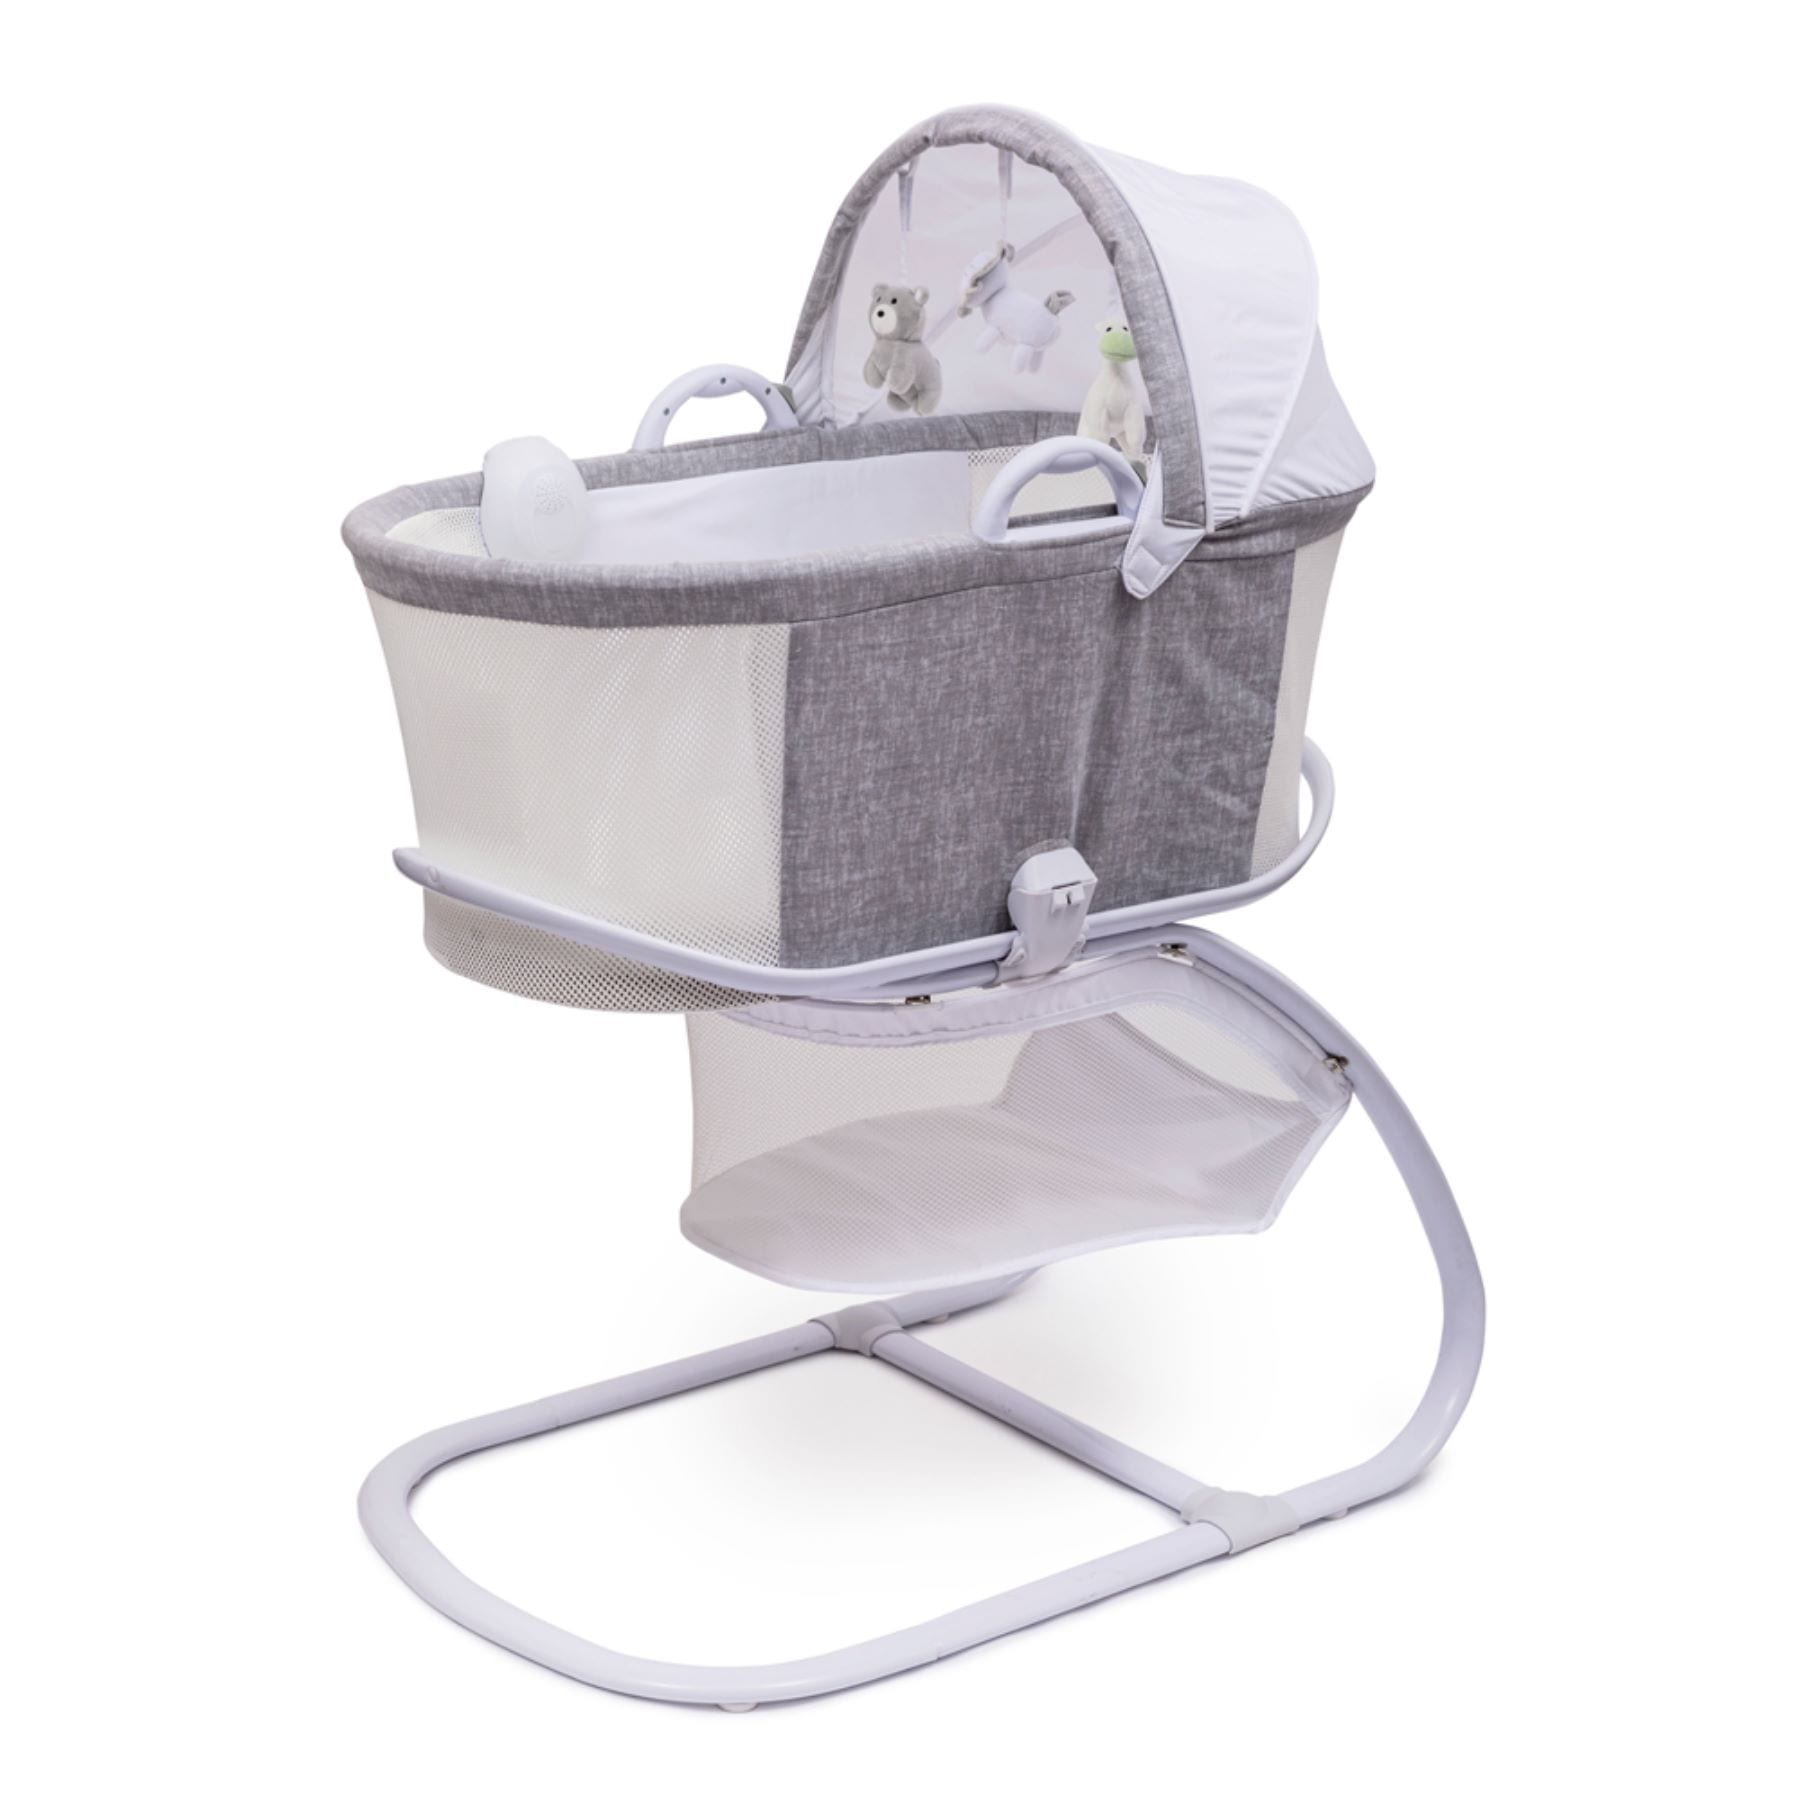 Purflo Breathable Bassinet - Marl Grey